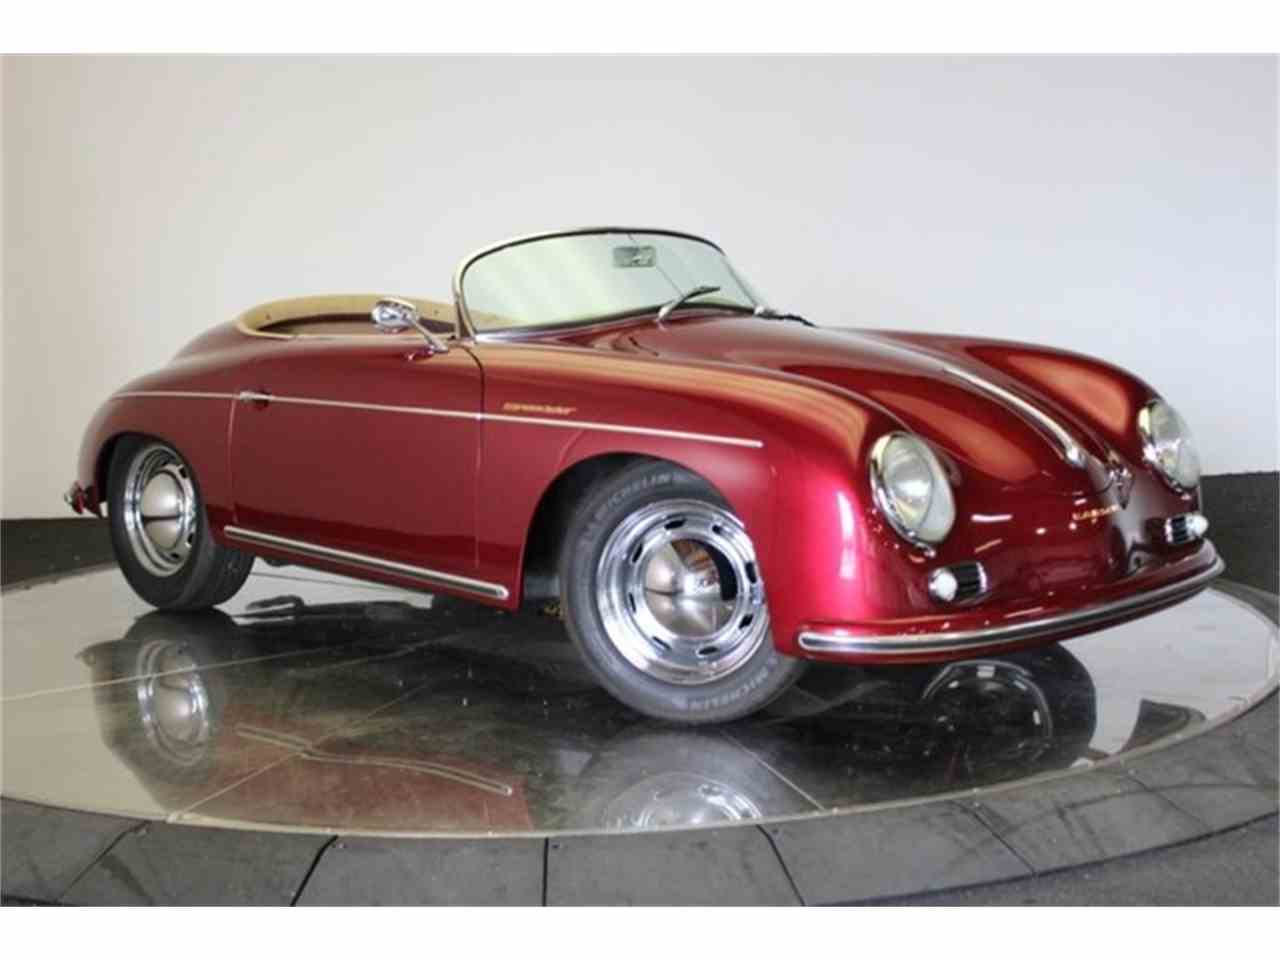 1971 Volkswagen Porsche Speedster Replica for Sale - CC-984885